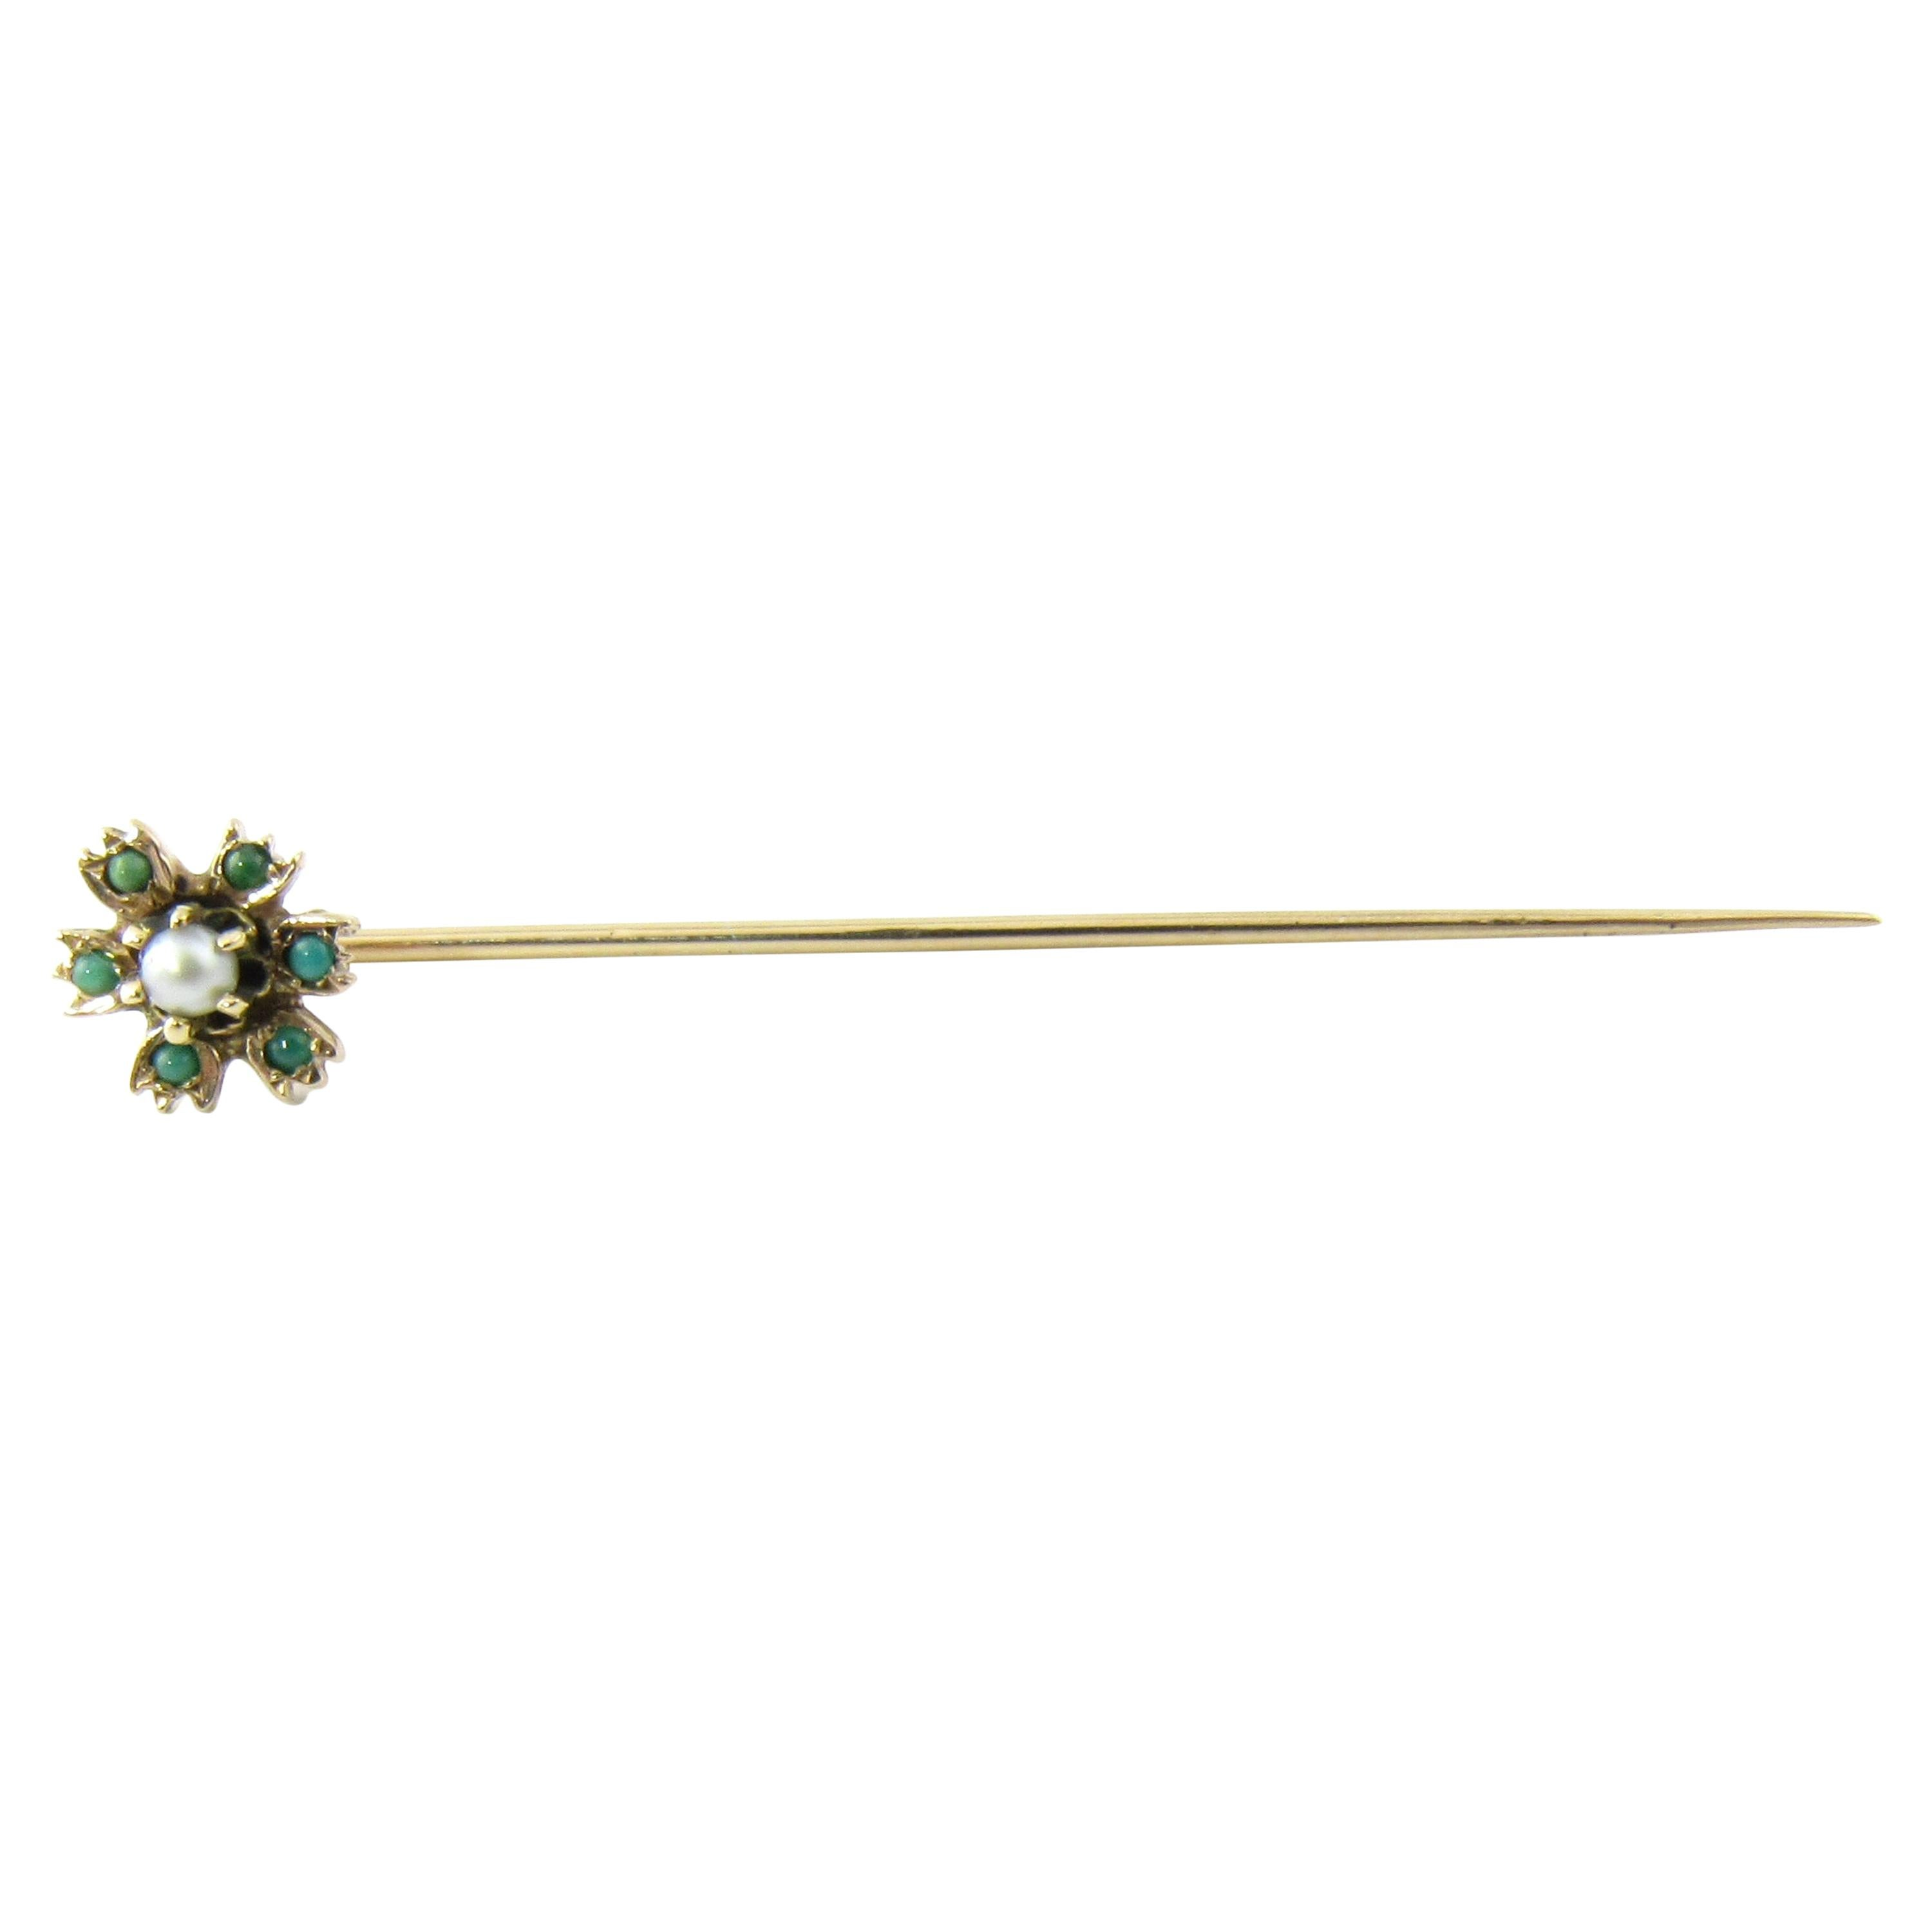 14 Karat Yellow Gold Turquoise and Seed Pearl Stick Pin